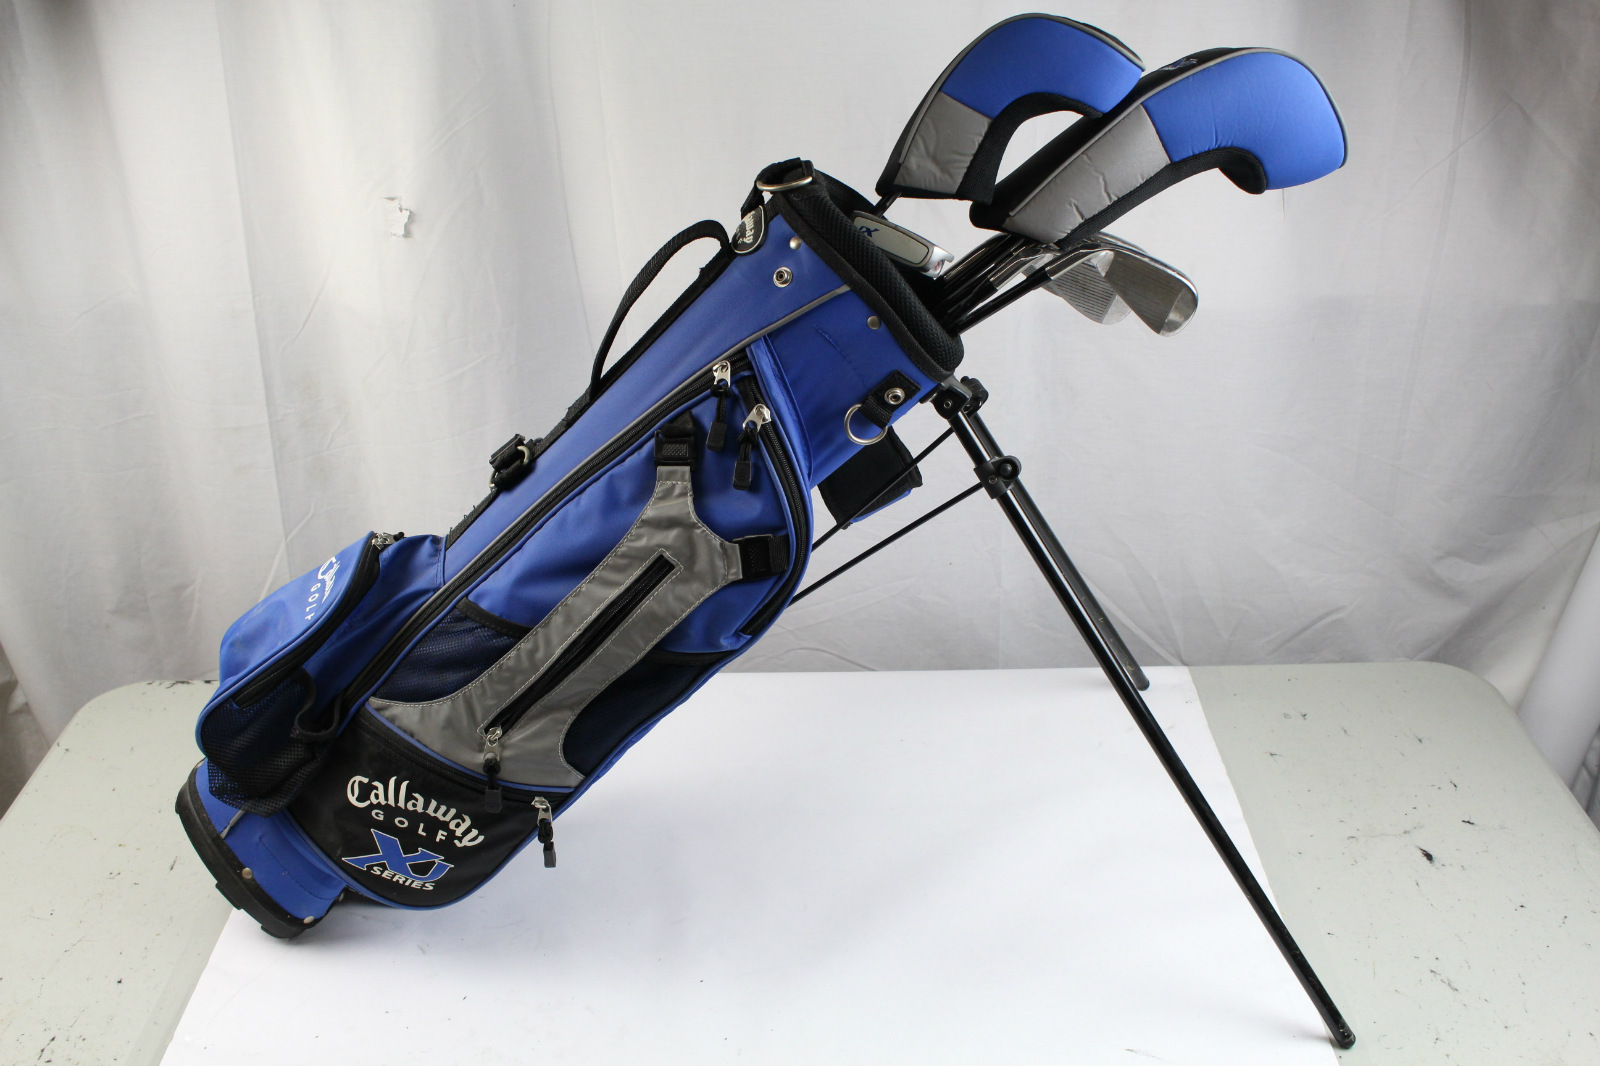 callaway xj series junior kids complete golf club set driver putter w bag blue ebay. Black Bedroom Furniture Sets. Home Design Ideas